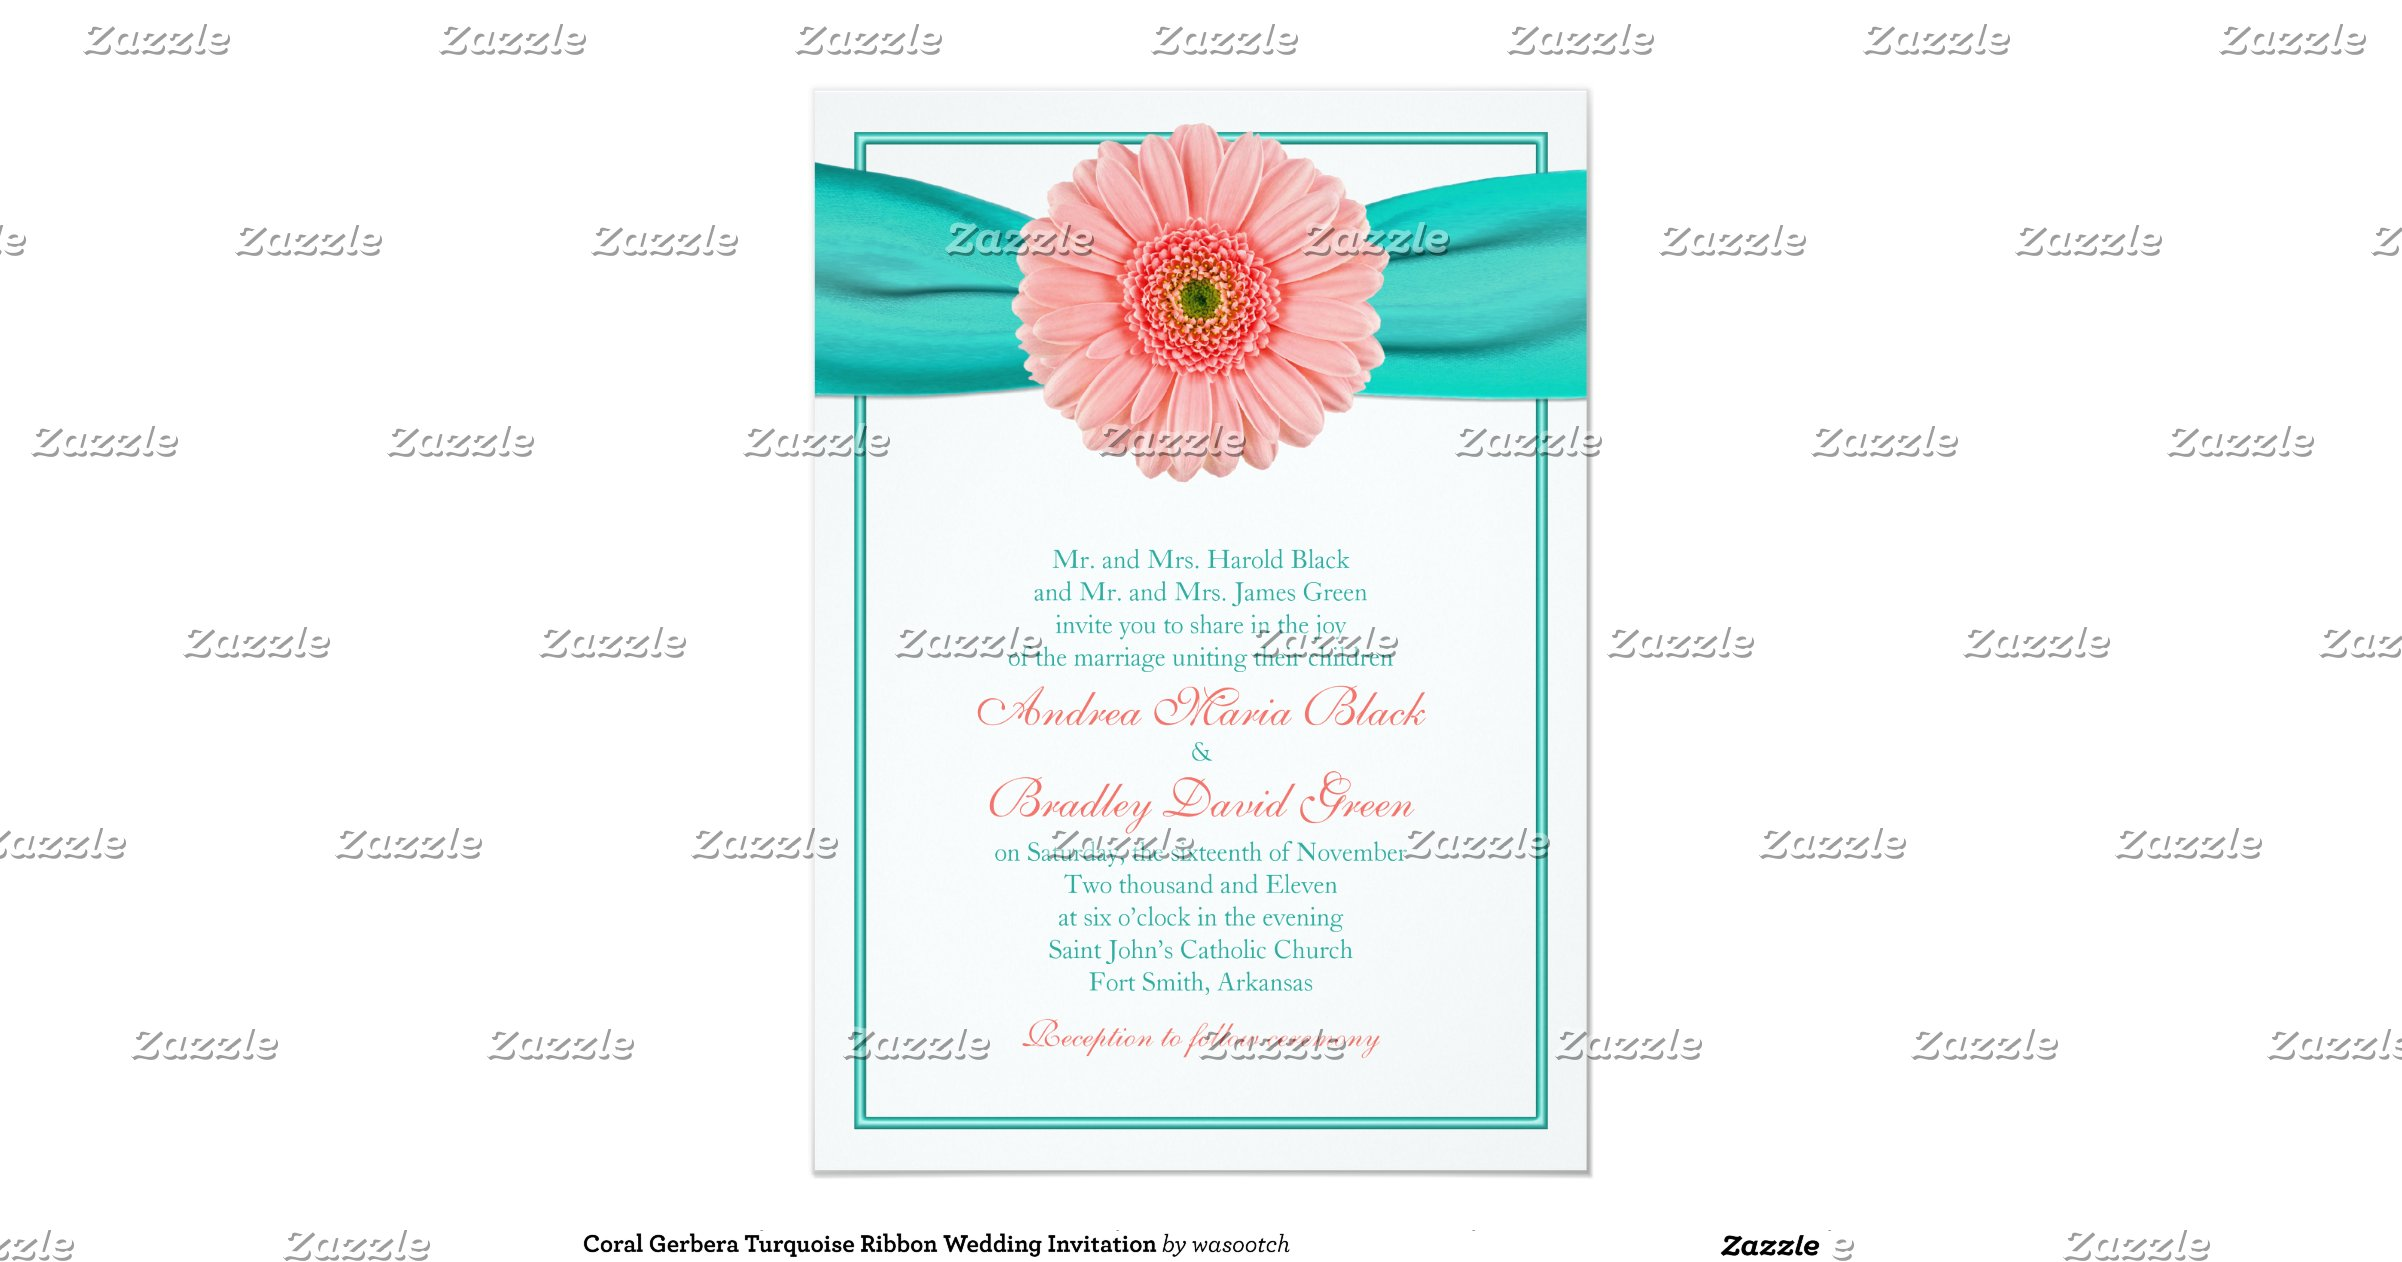 Turquoise And Coral Wedding Invitations: Coral_gerbera_turquoise_ribbon_wedding_invitation